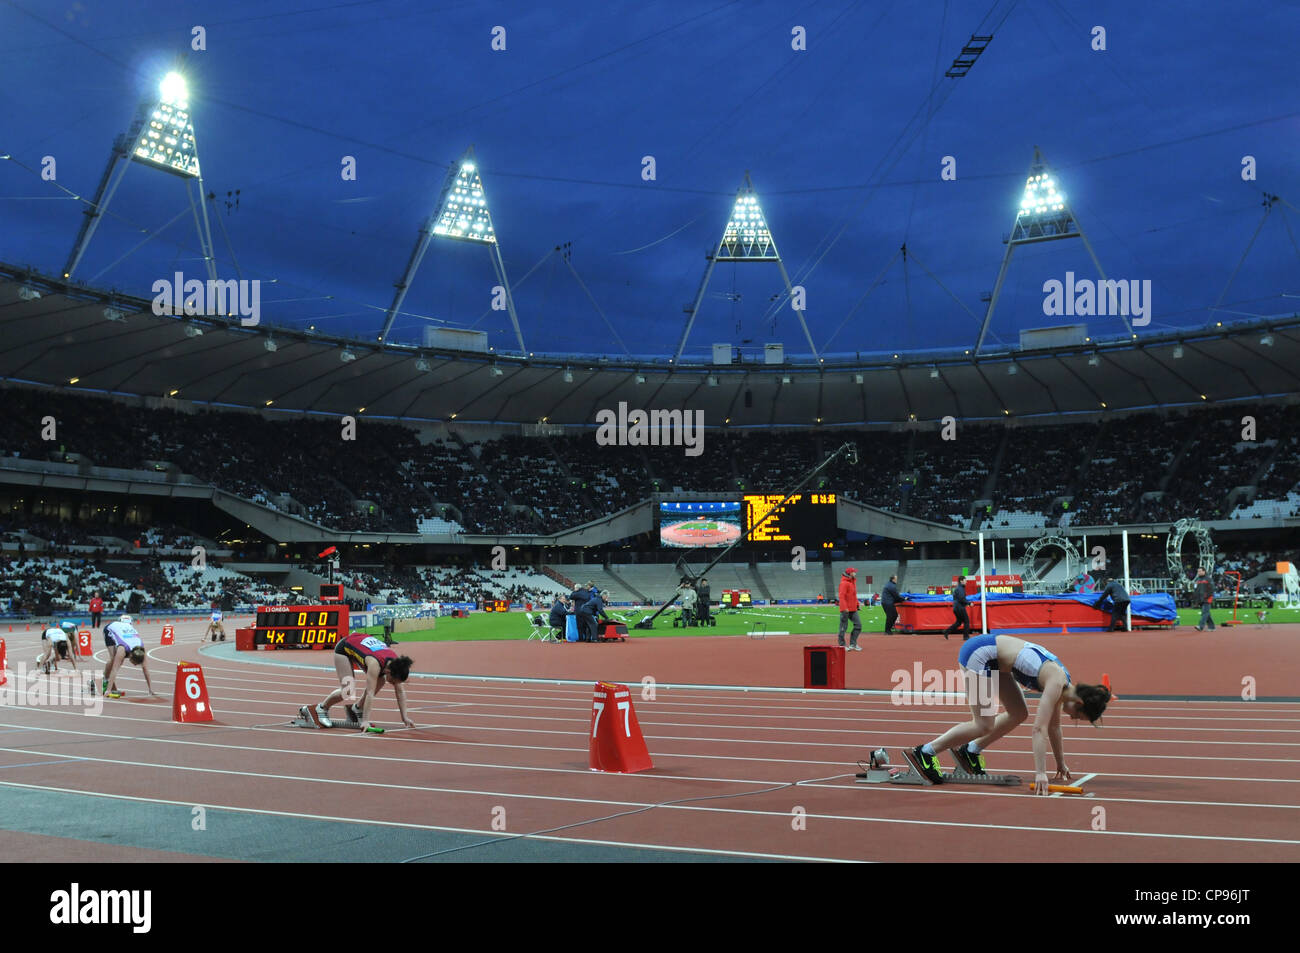 Olympic 2012 Athletics Stadium, Londra, Regno Unito. Womens 4 x 100 relè al BUCS VISA Outdoor Athletics Championships. Foto Stock